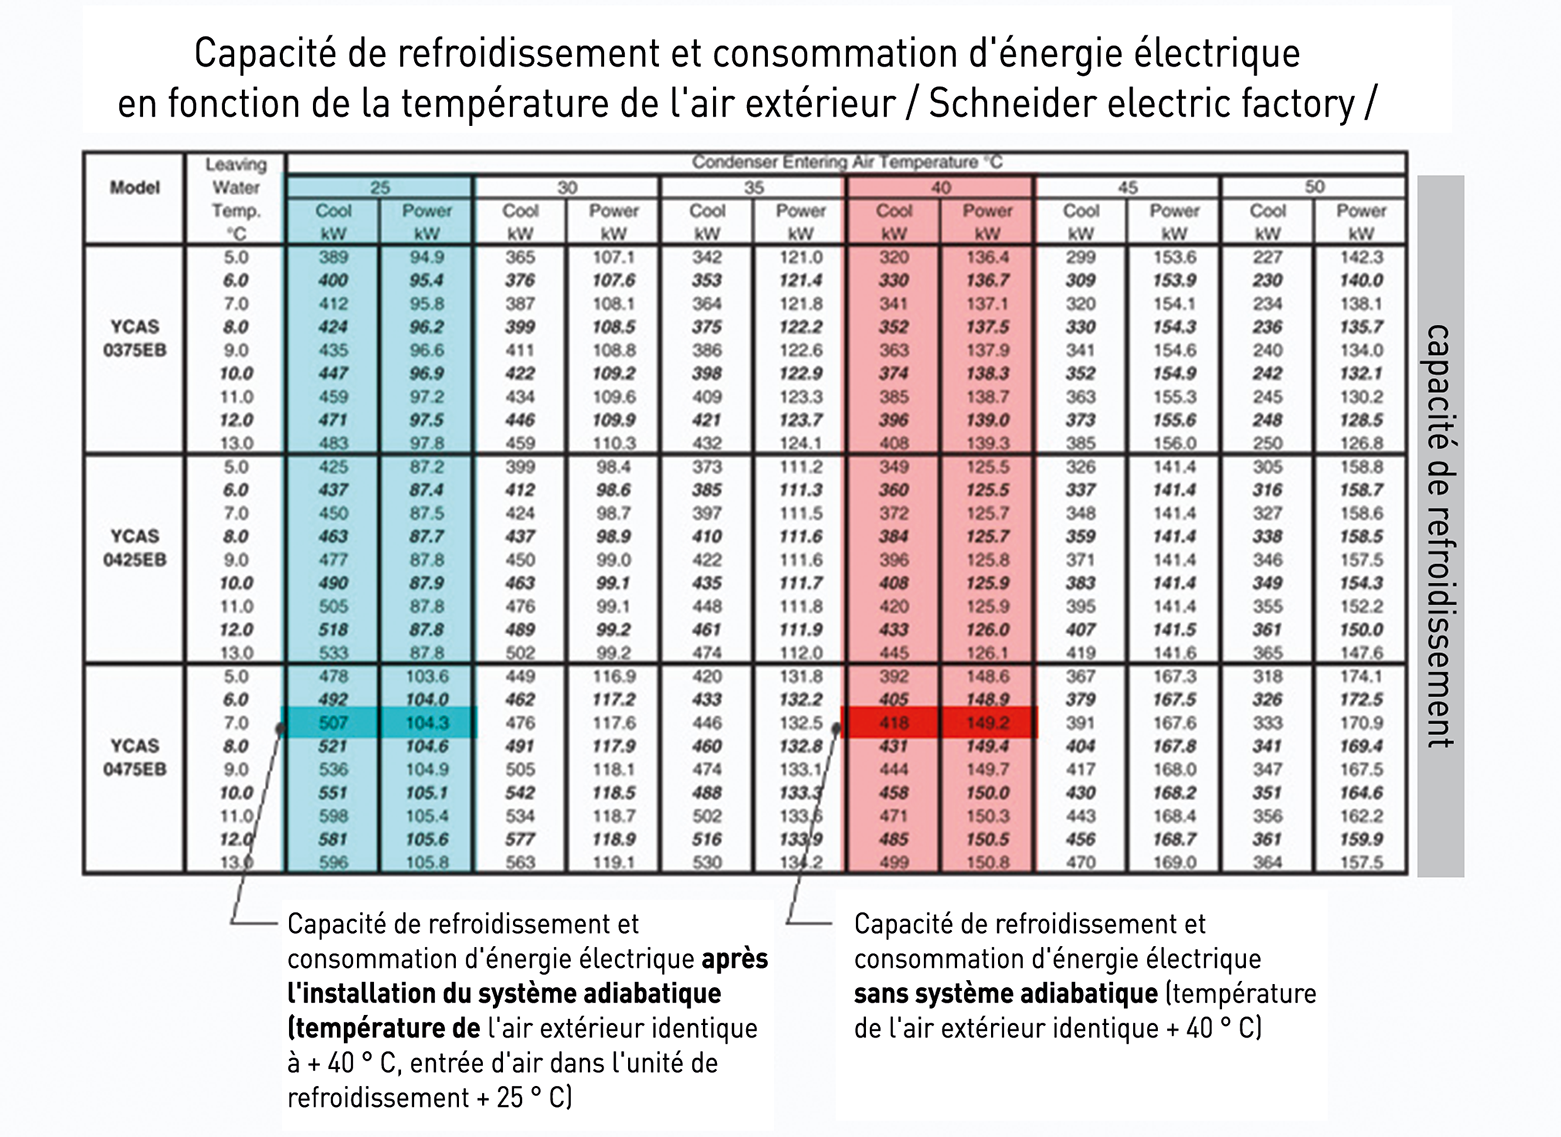 Smart-cooling-hybrid-adiabatic-panels-efficiency-proof-calculation-of-savings-at-Schneider-Electric